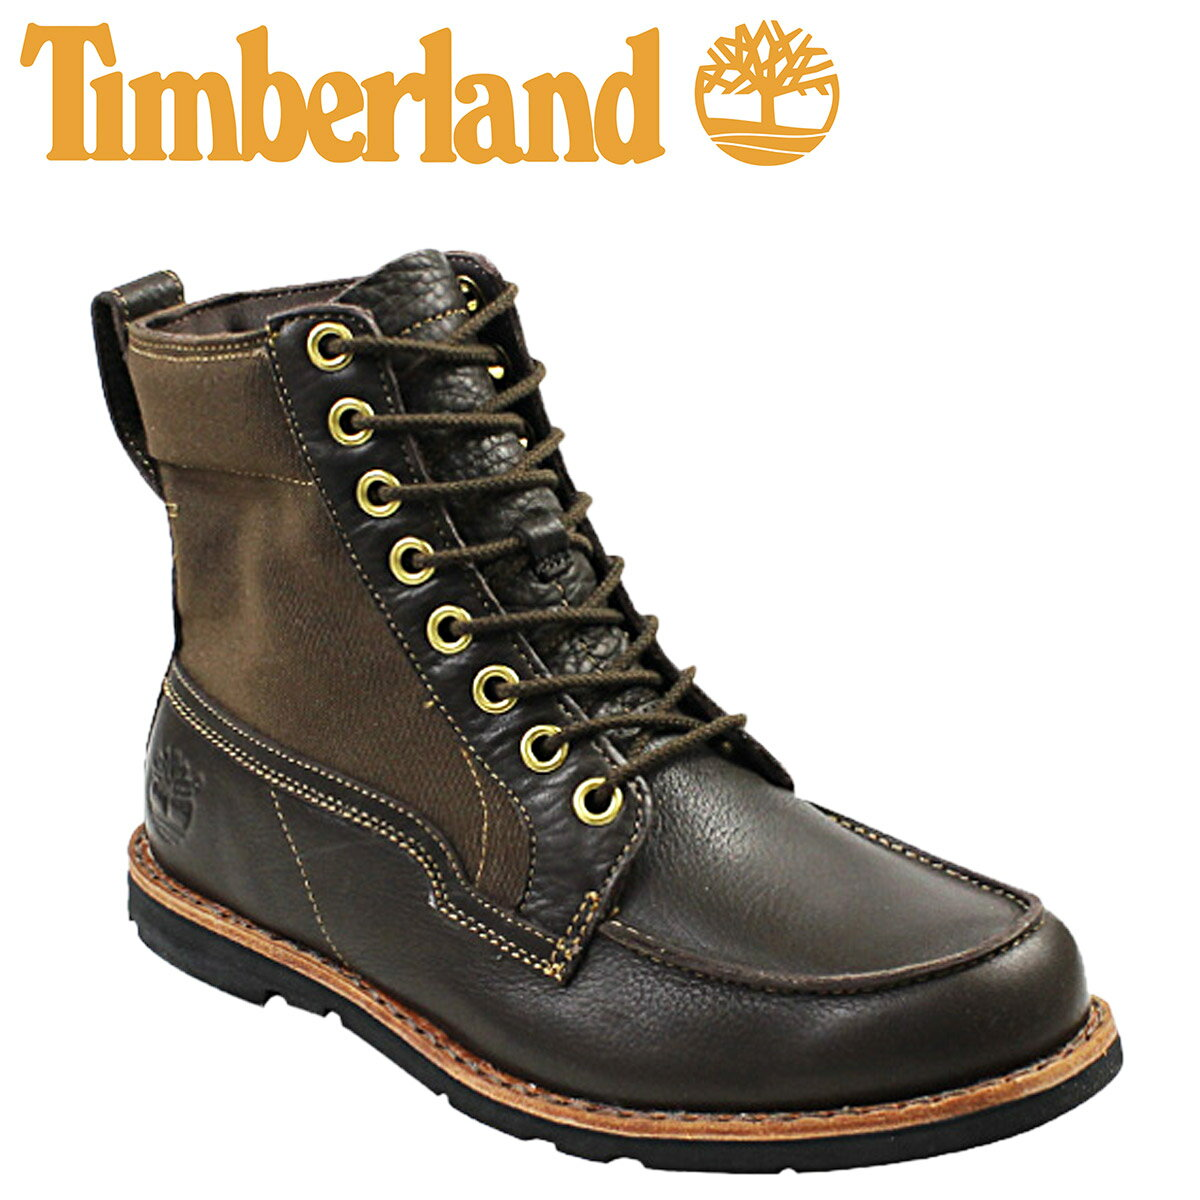 Timberland Timberland Earthkeepers Rugged Canvas Panel Boots [Brown] EARTHKEEPERS  RUGGED CAVAS PANEL BOOT Leather Menu0027s 5629R [4 / 3 New In Stock] [regular]